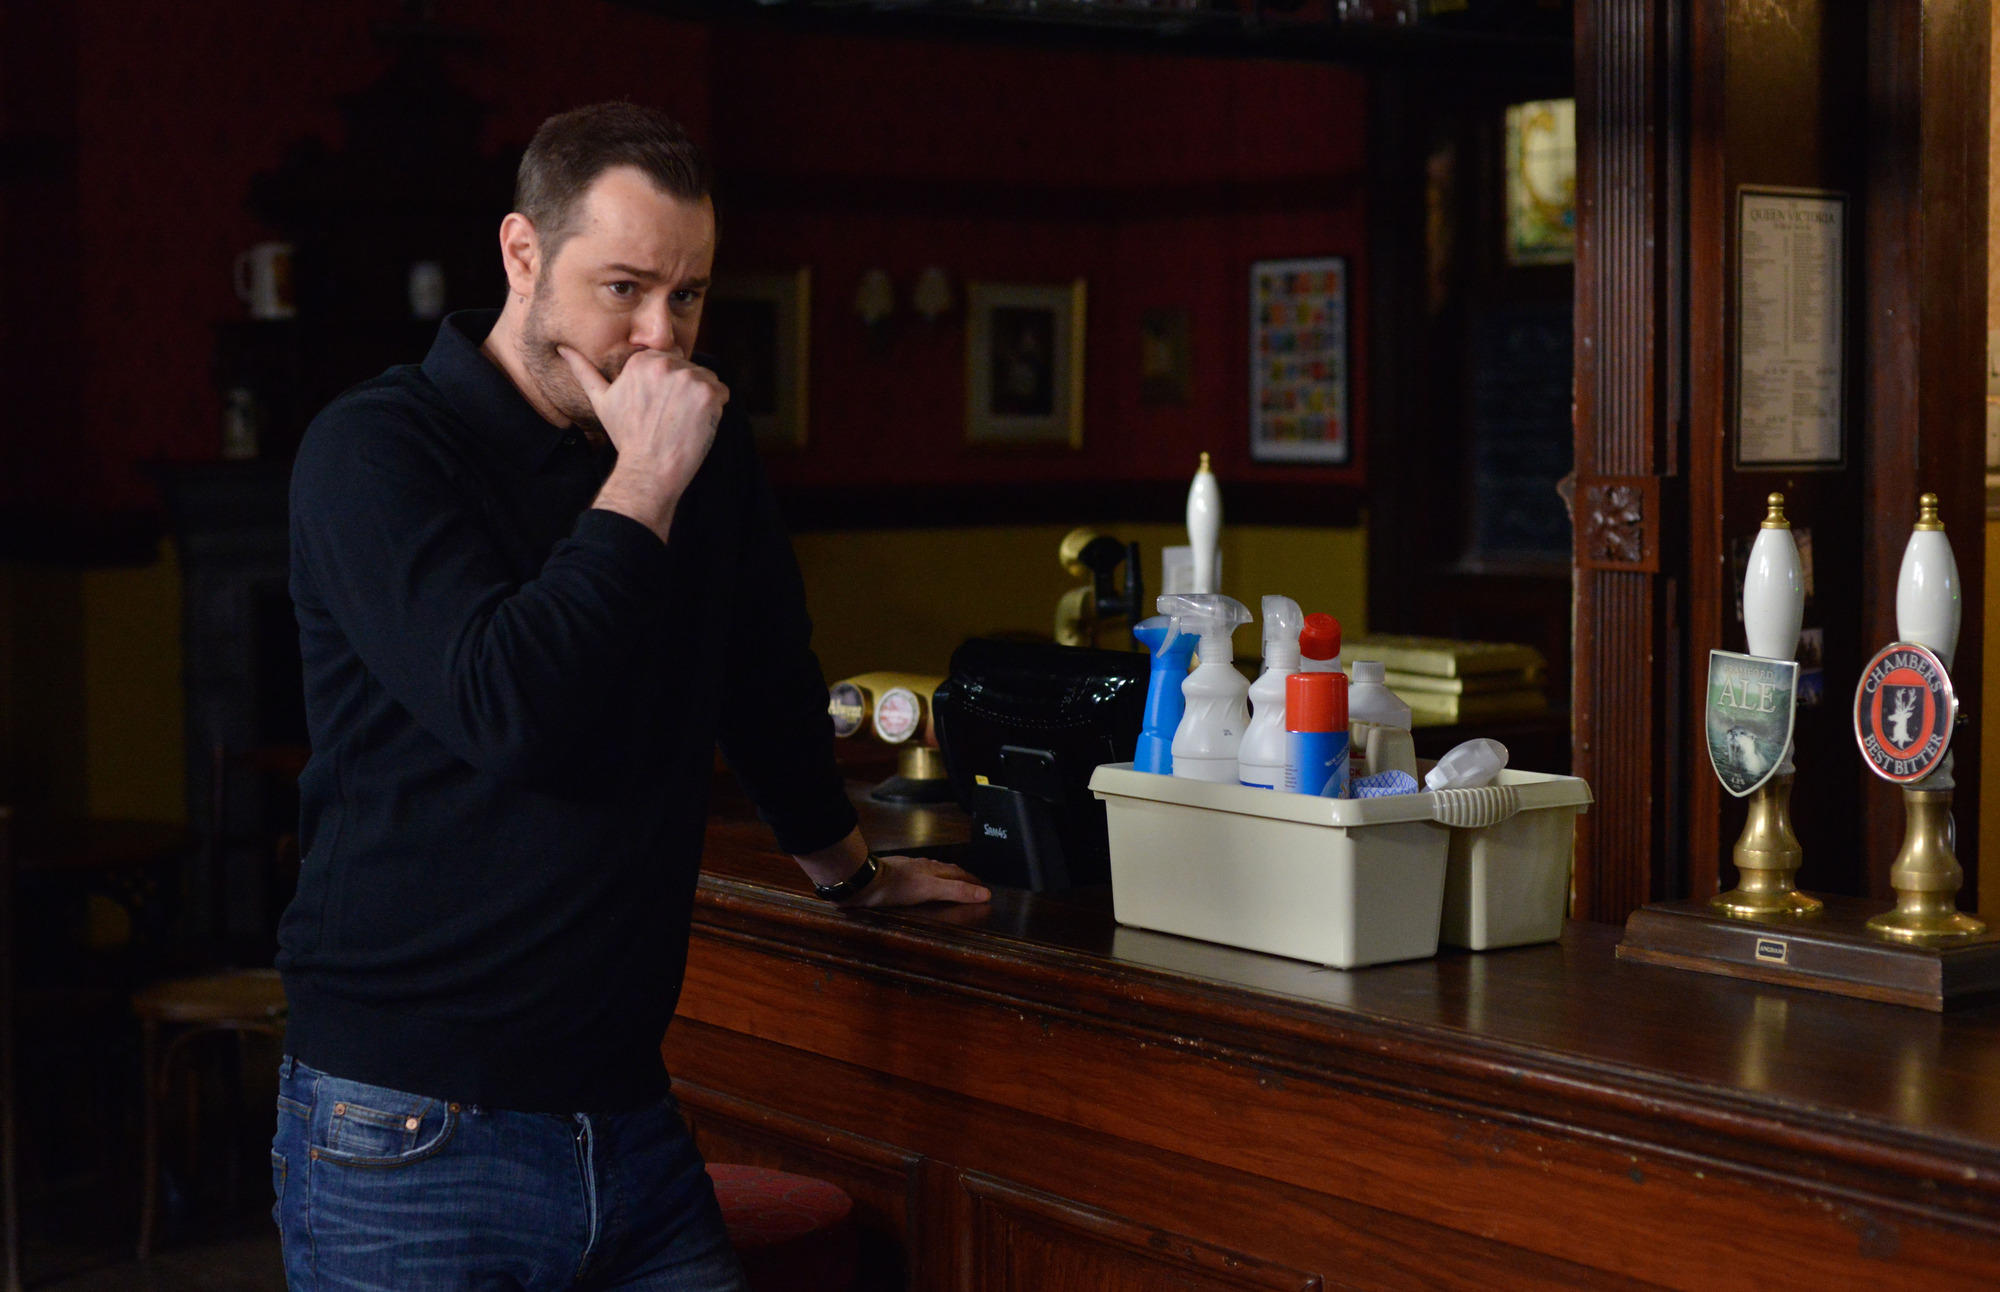 Lads, there is no episode of EastEnders tonight – this is not a drill